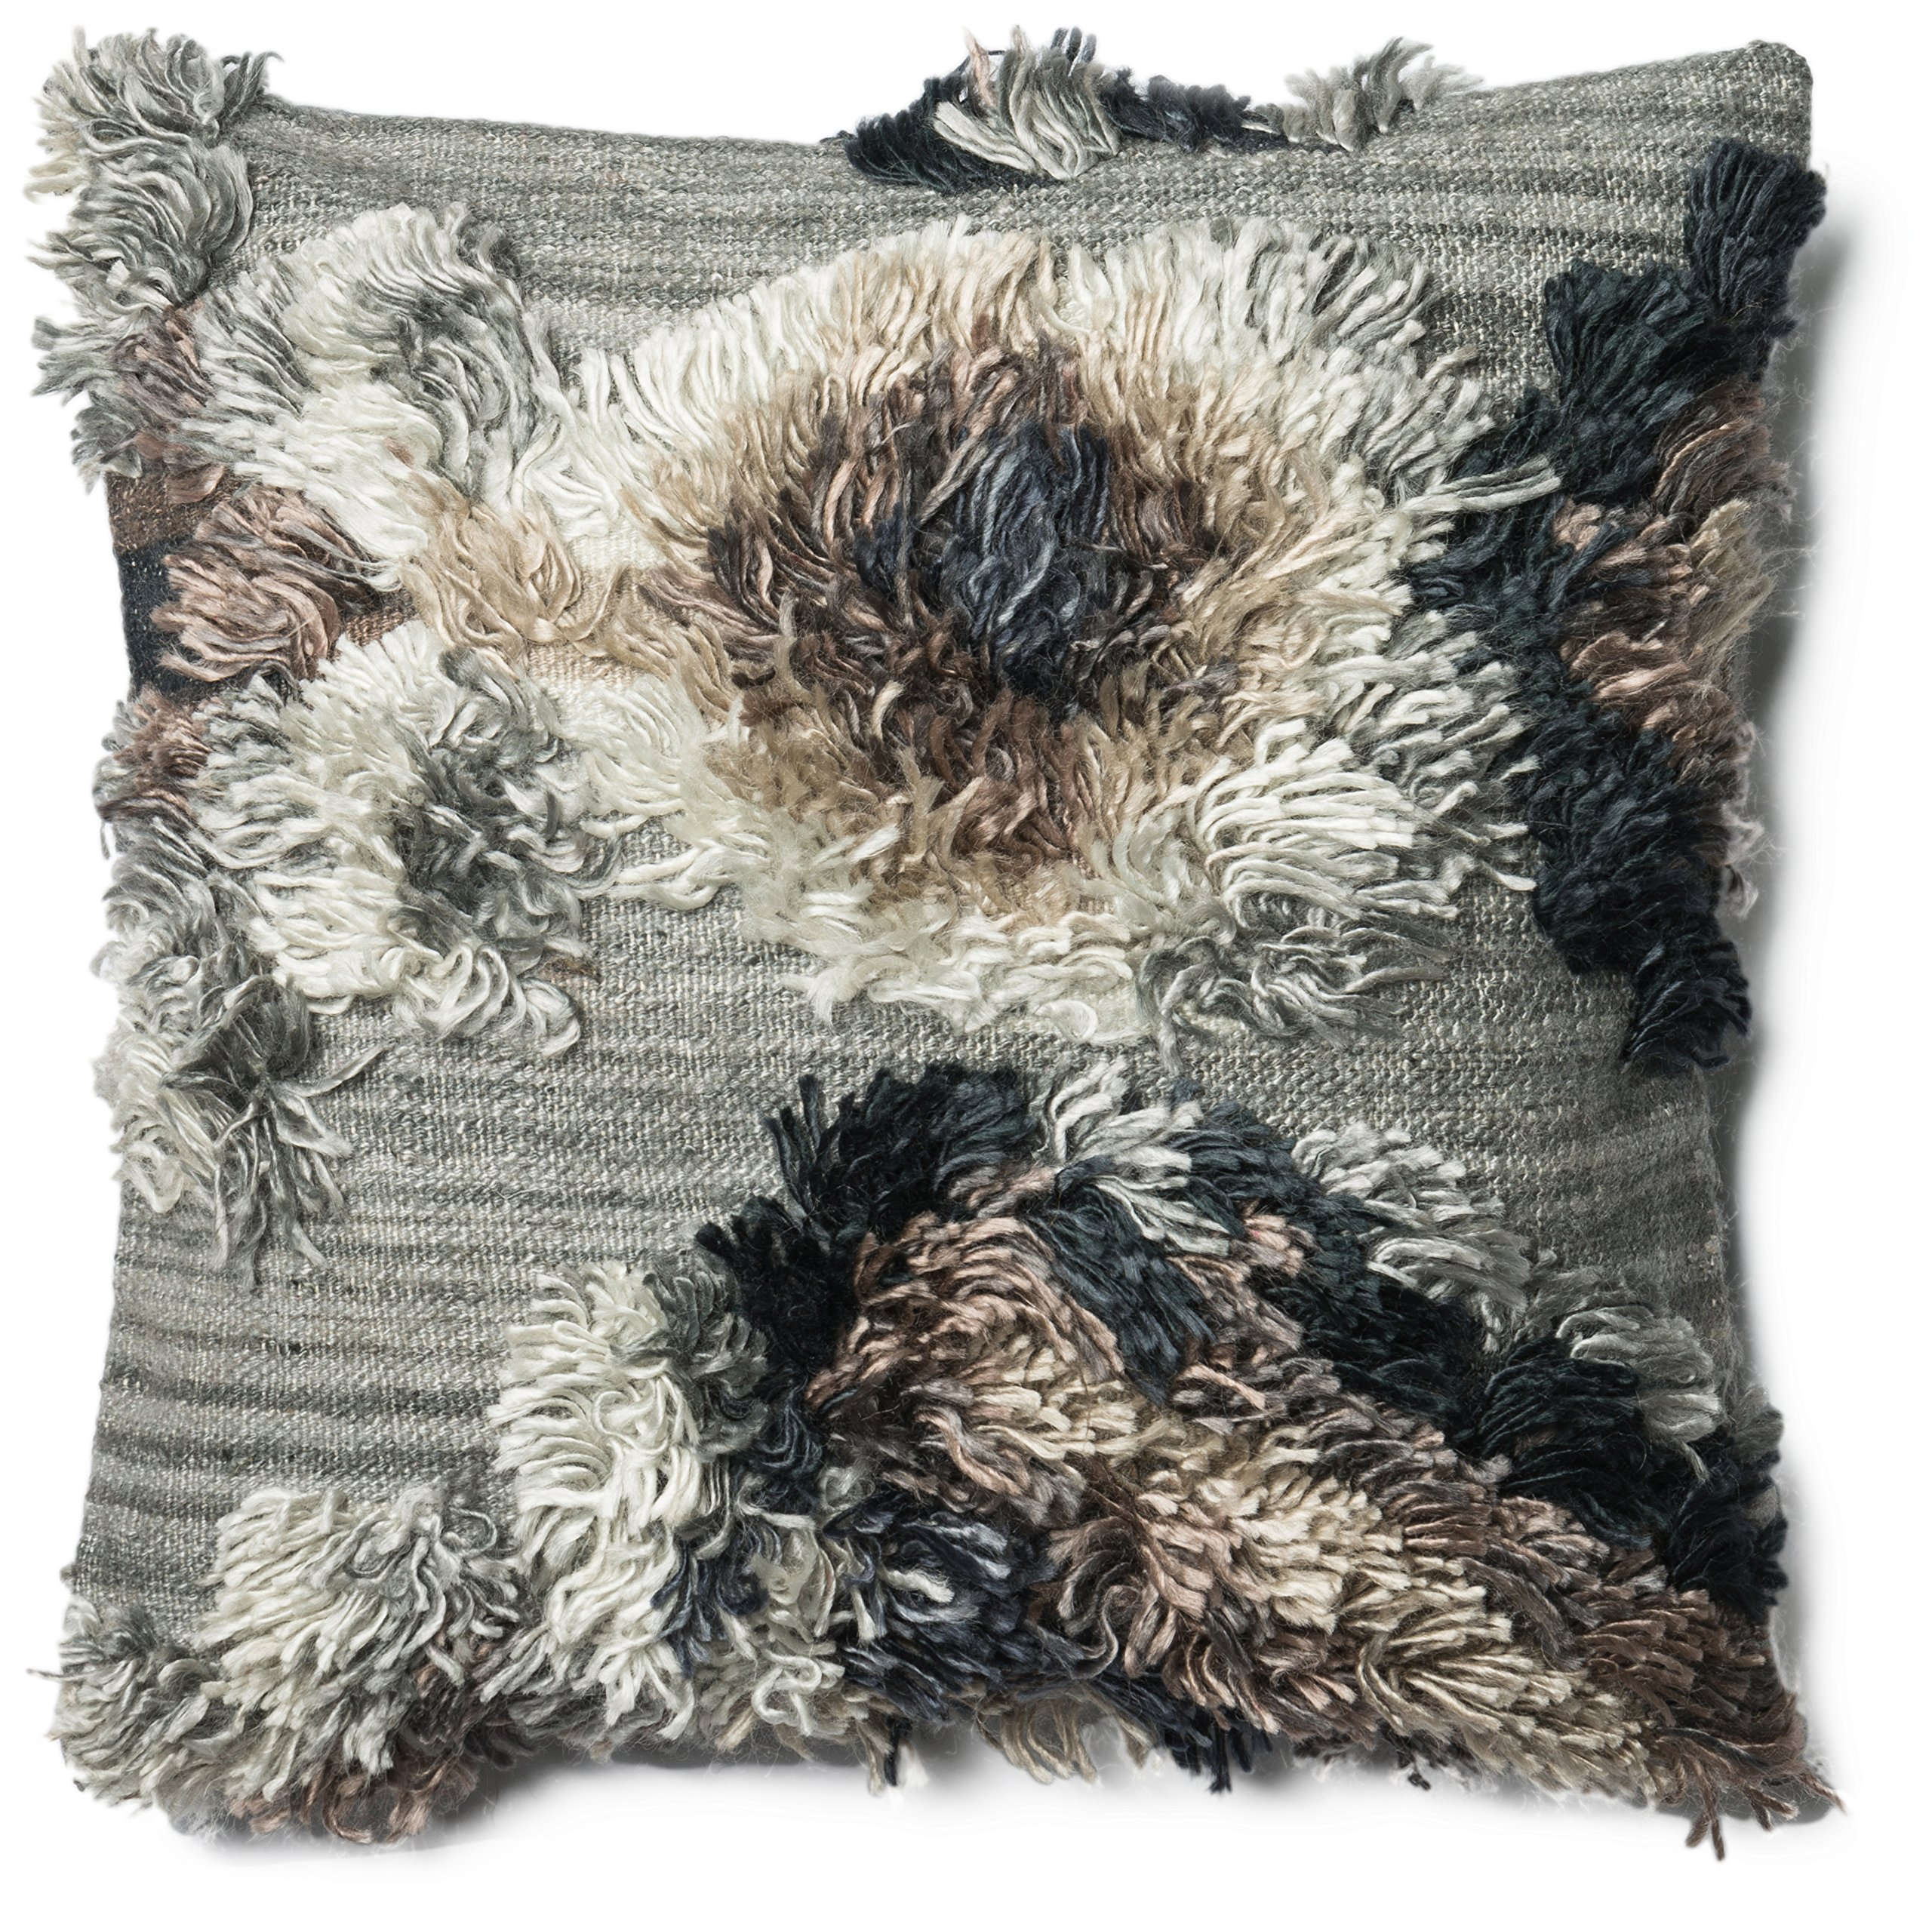 Loloi  Accent  Pillow  PSETP0414GN00PIL3  Granite    22''  x  22''  90%  Wool  With  Metal  &  Crystals  Cover  with  Polyester  Fill